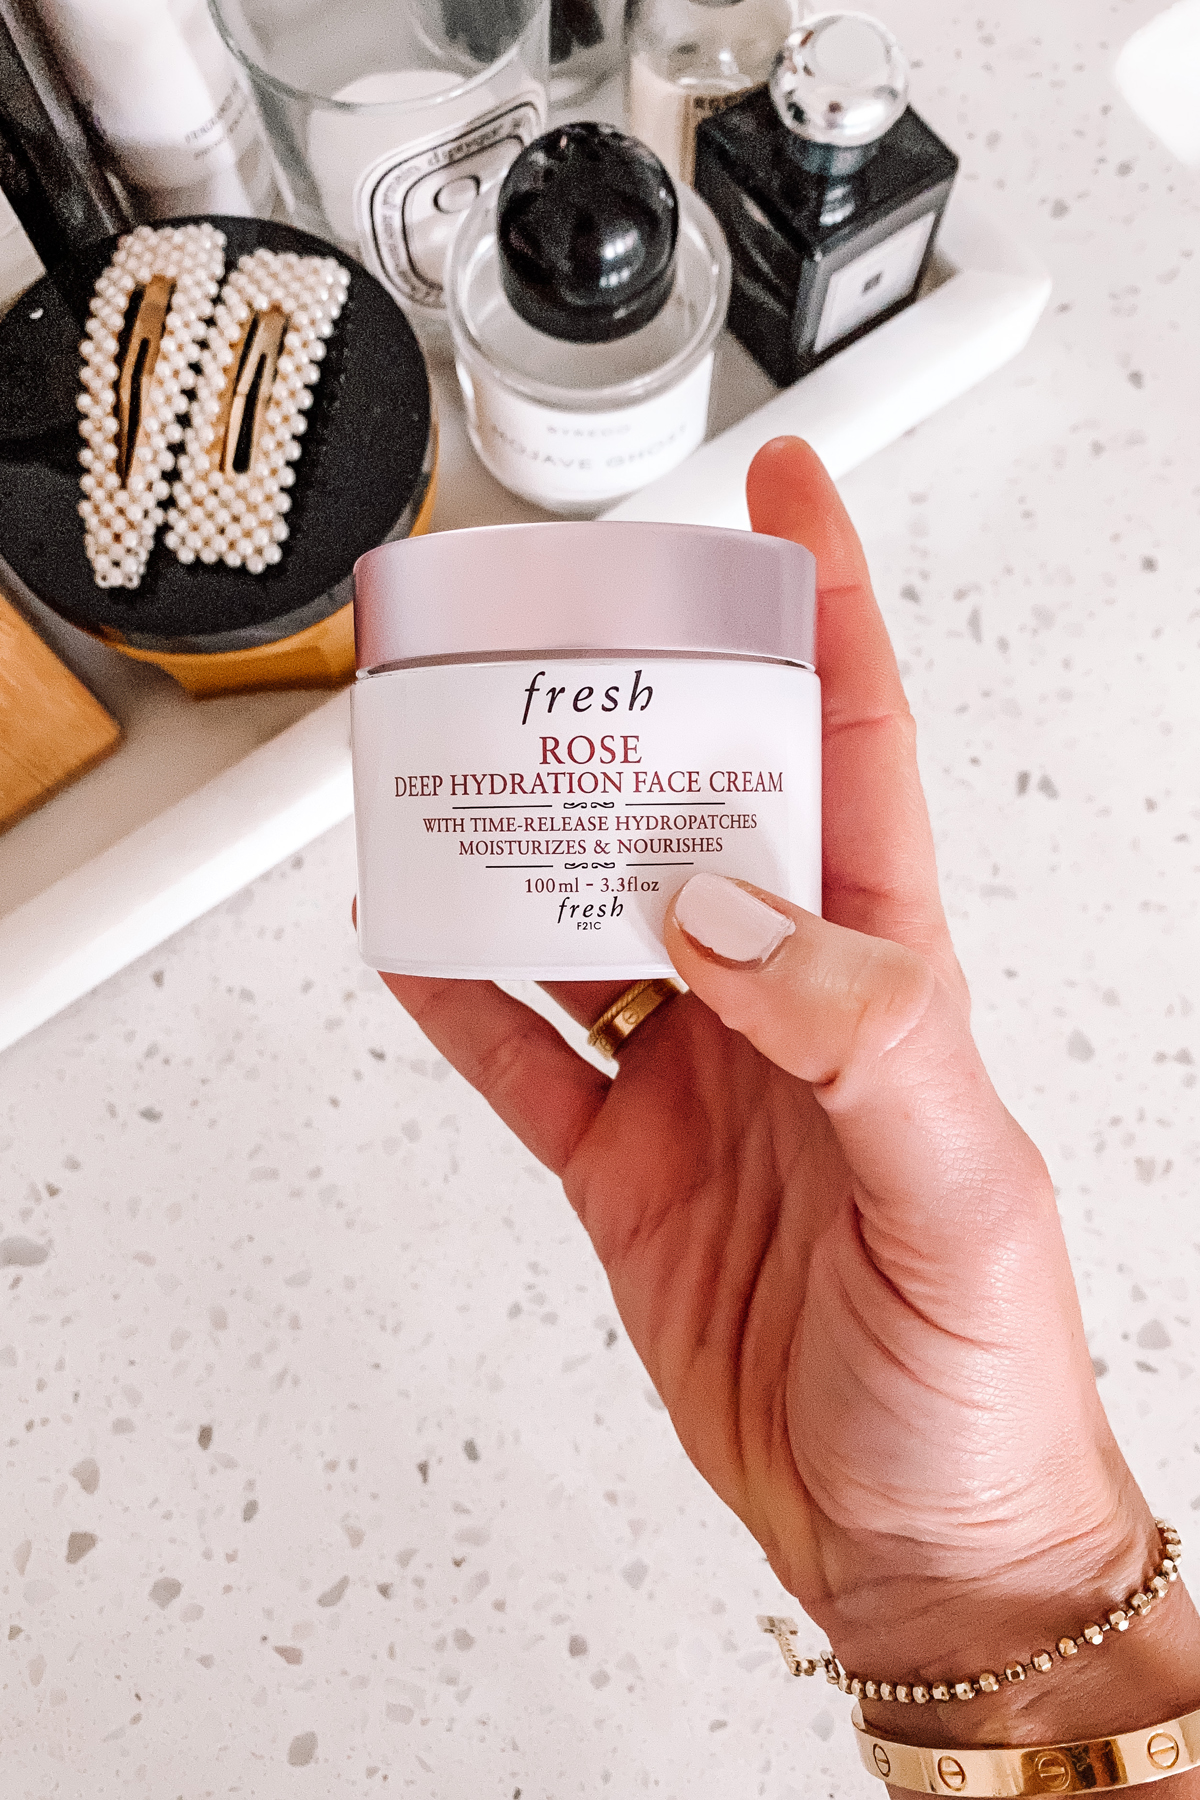 Fashion Jackson Sephora Spring Beauty Event Fresh Rose Deep Hydration Face Cream